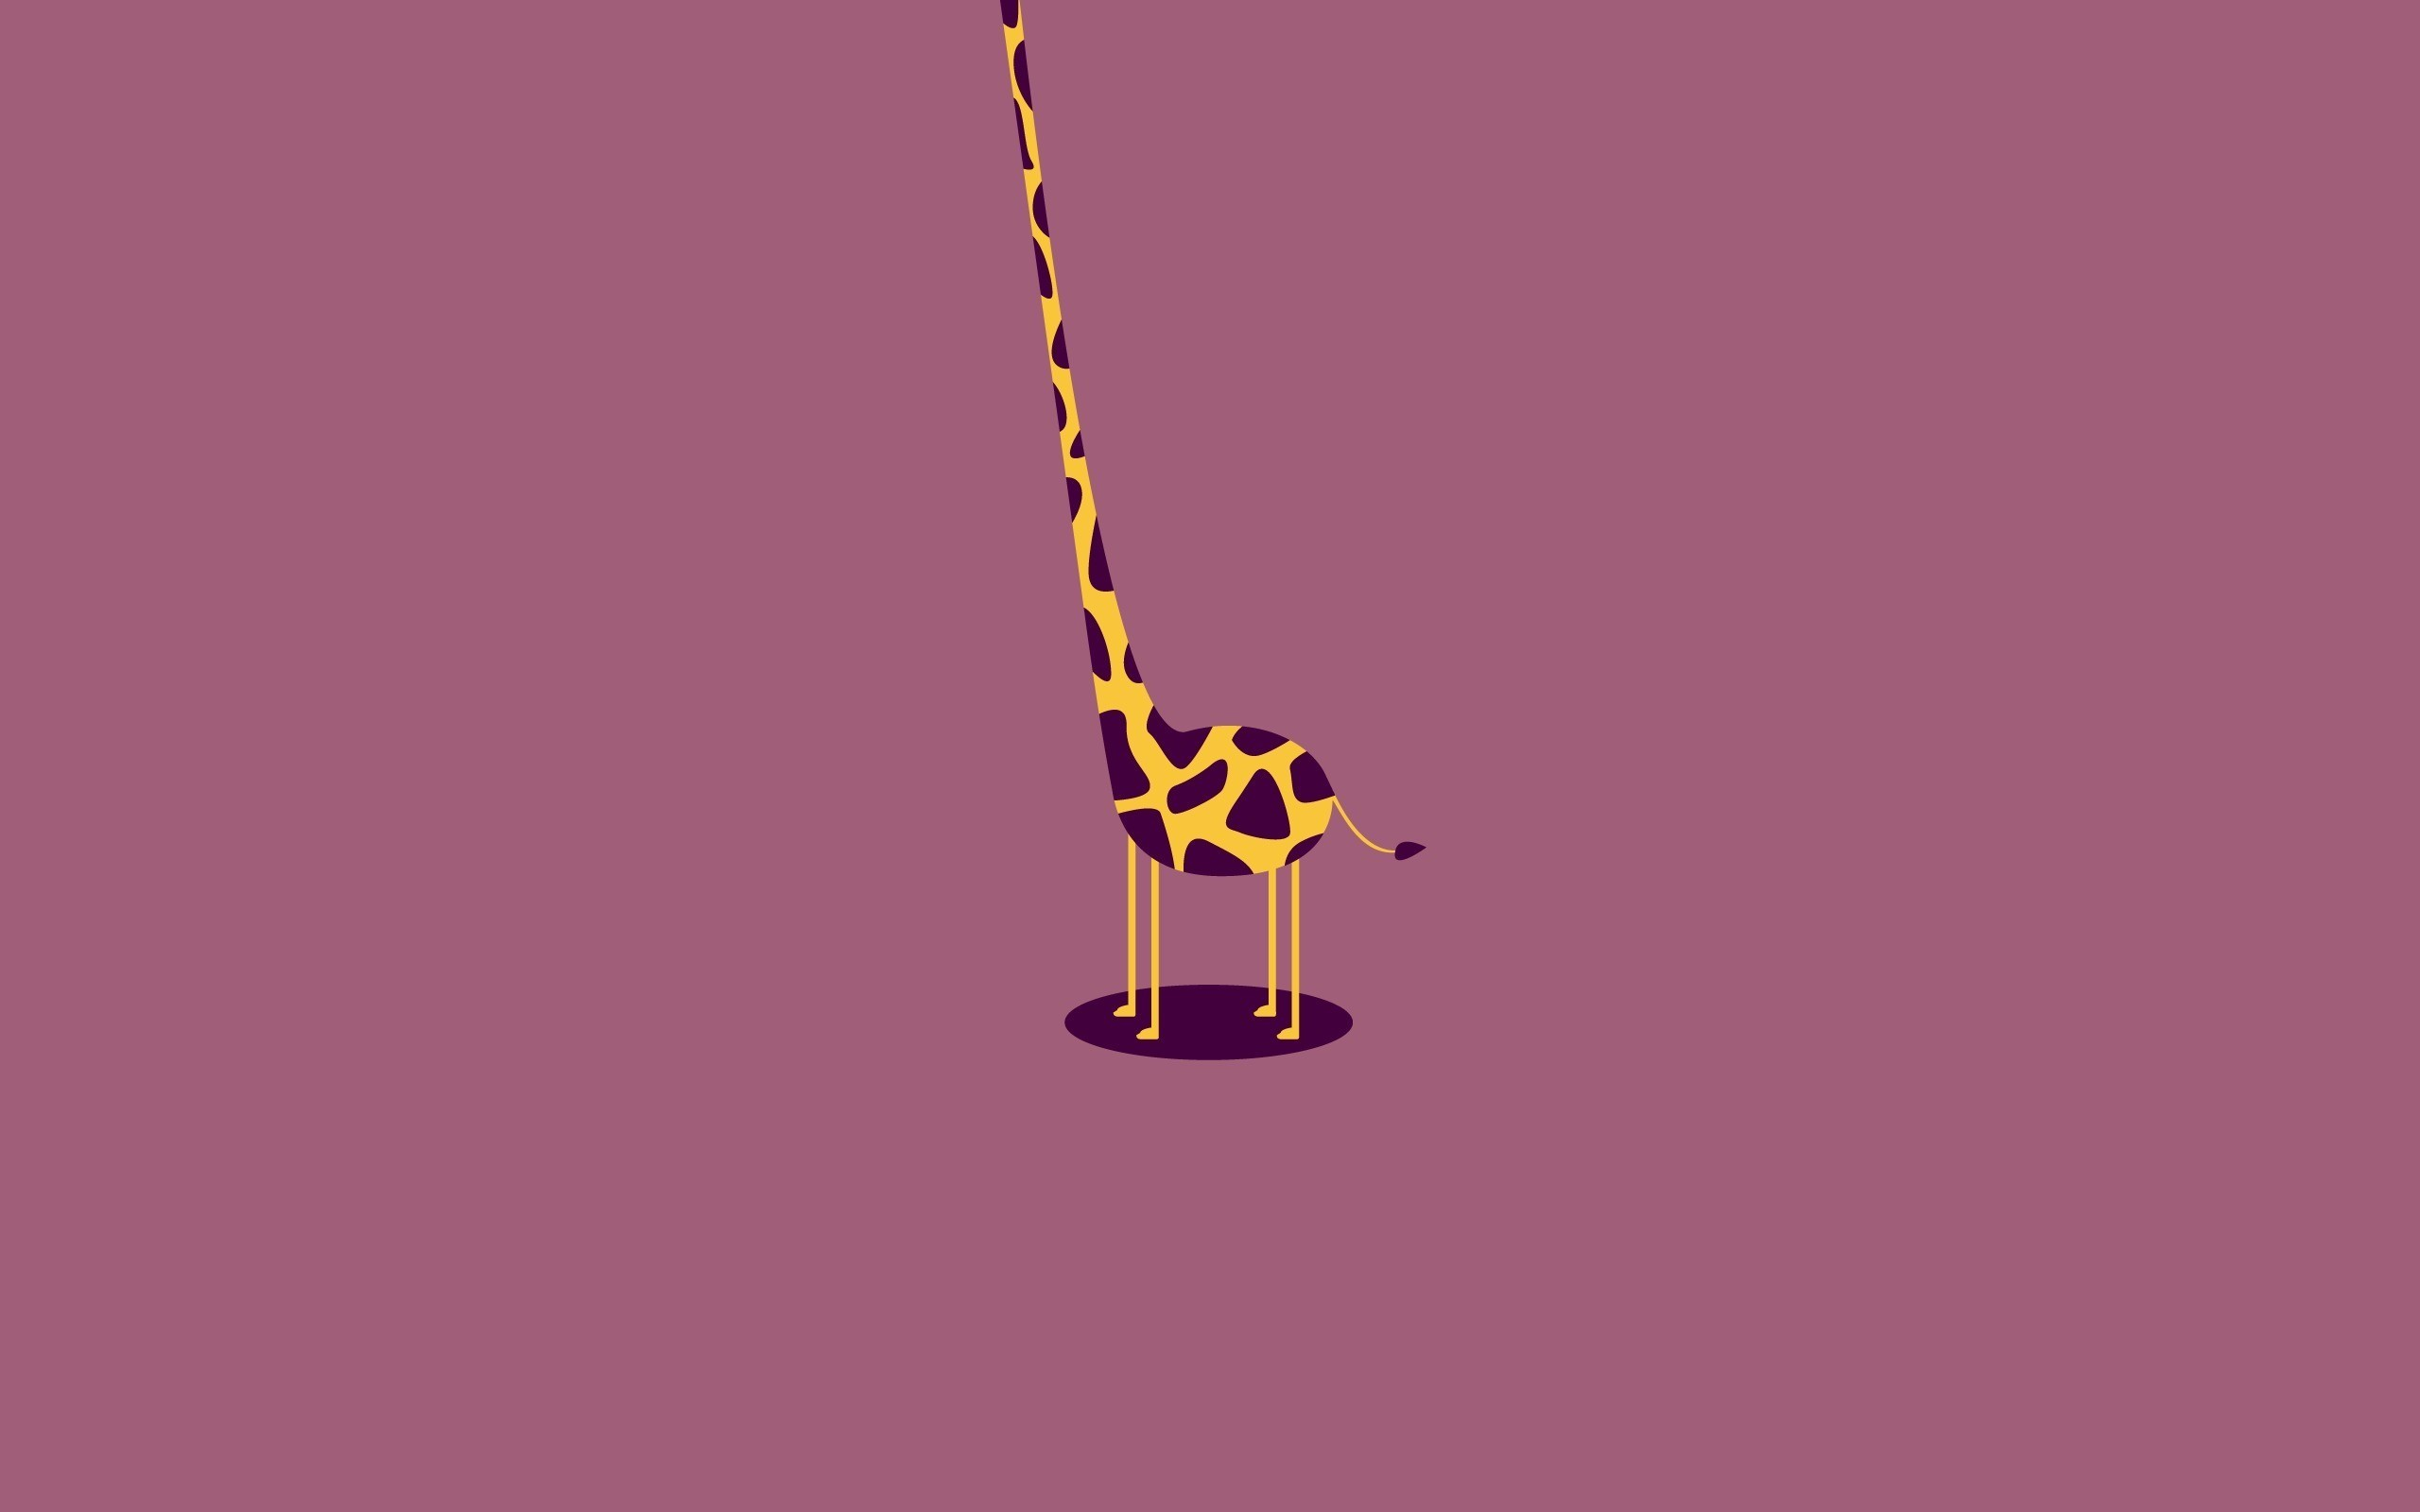 Cute Giraffe Wallpaper 62 Images